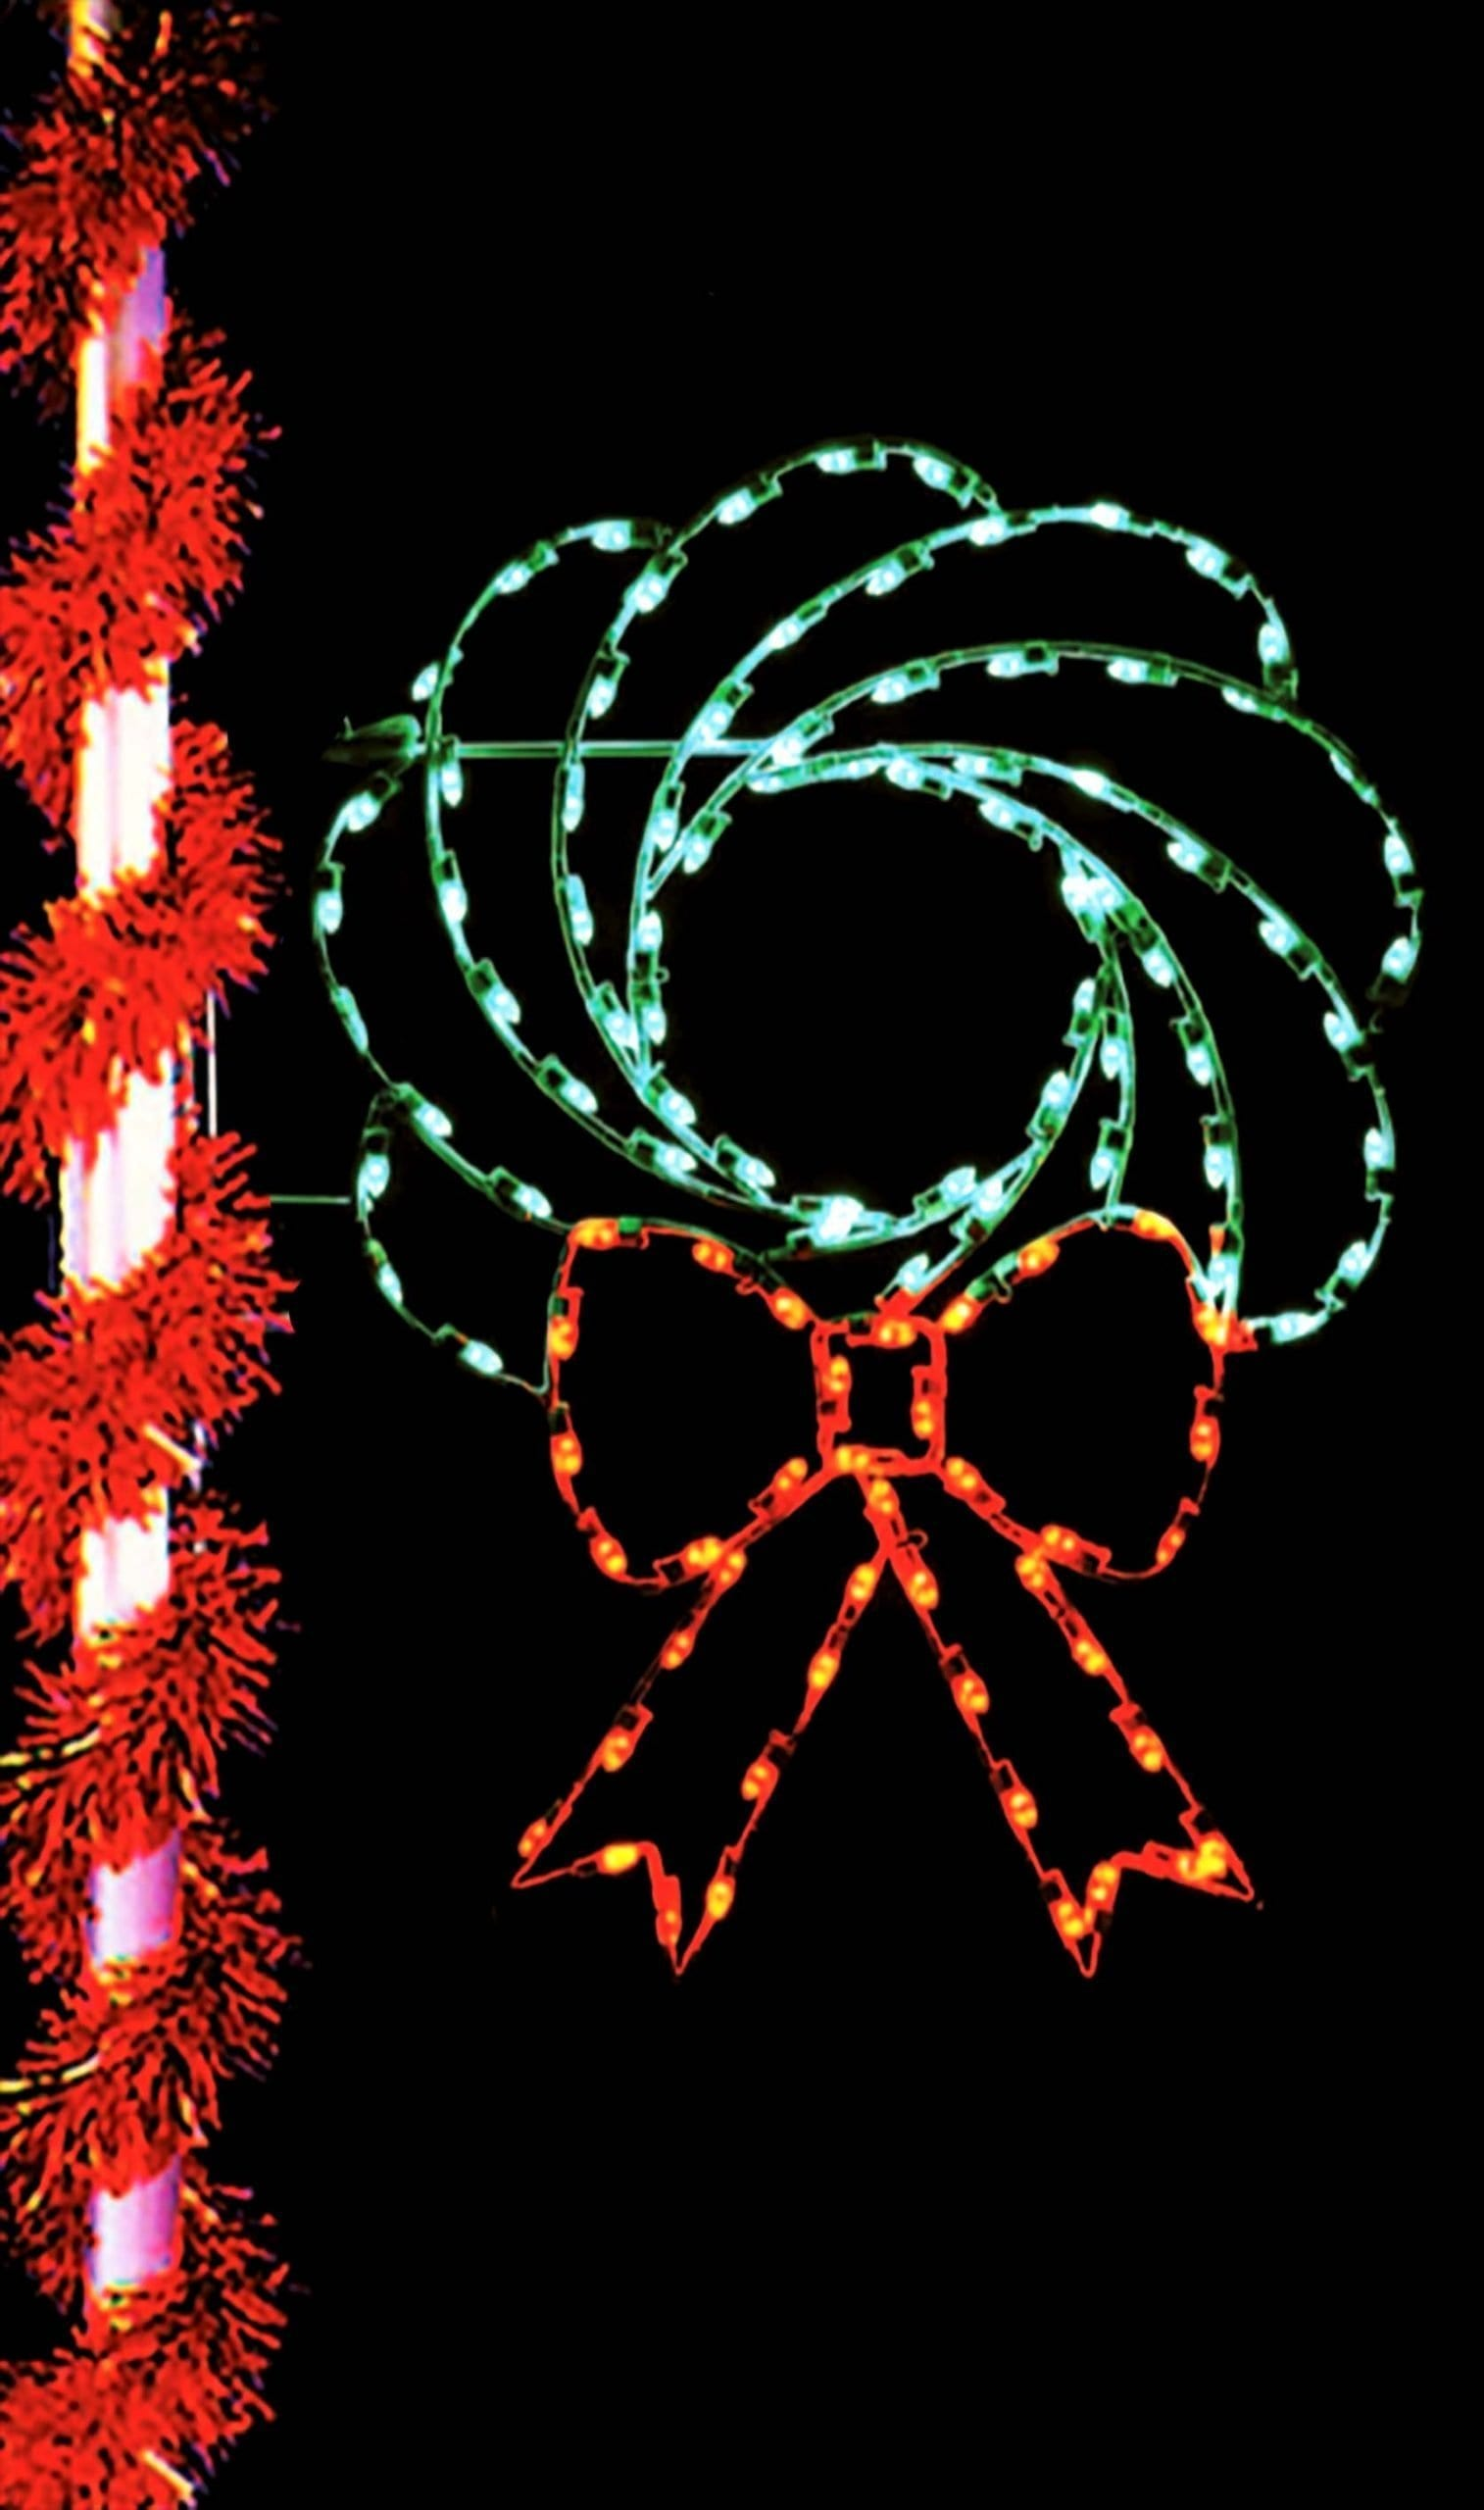 PMCT-135 Illuminated Wreath